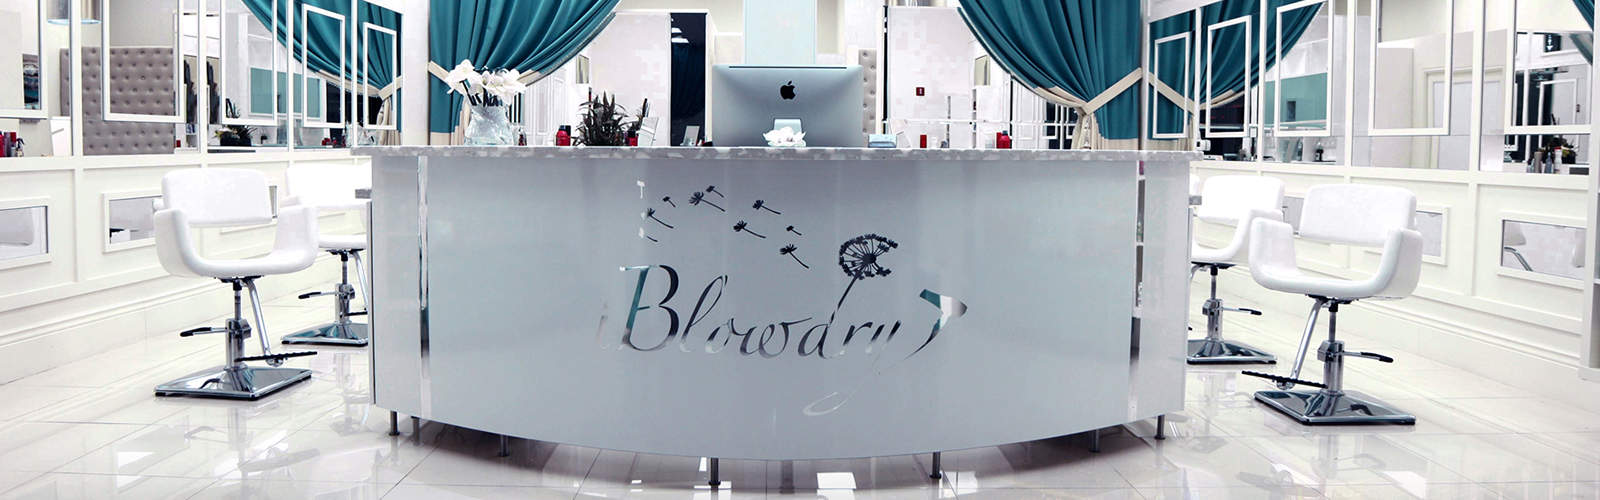 iblowdry-hair-salon